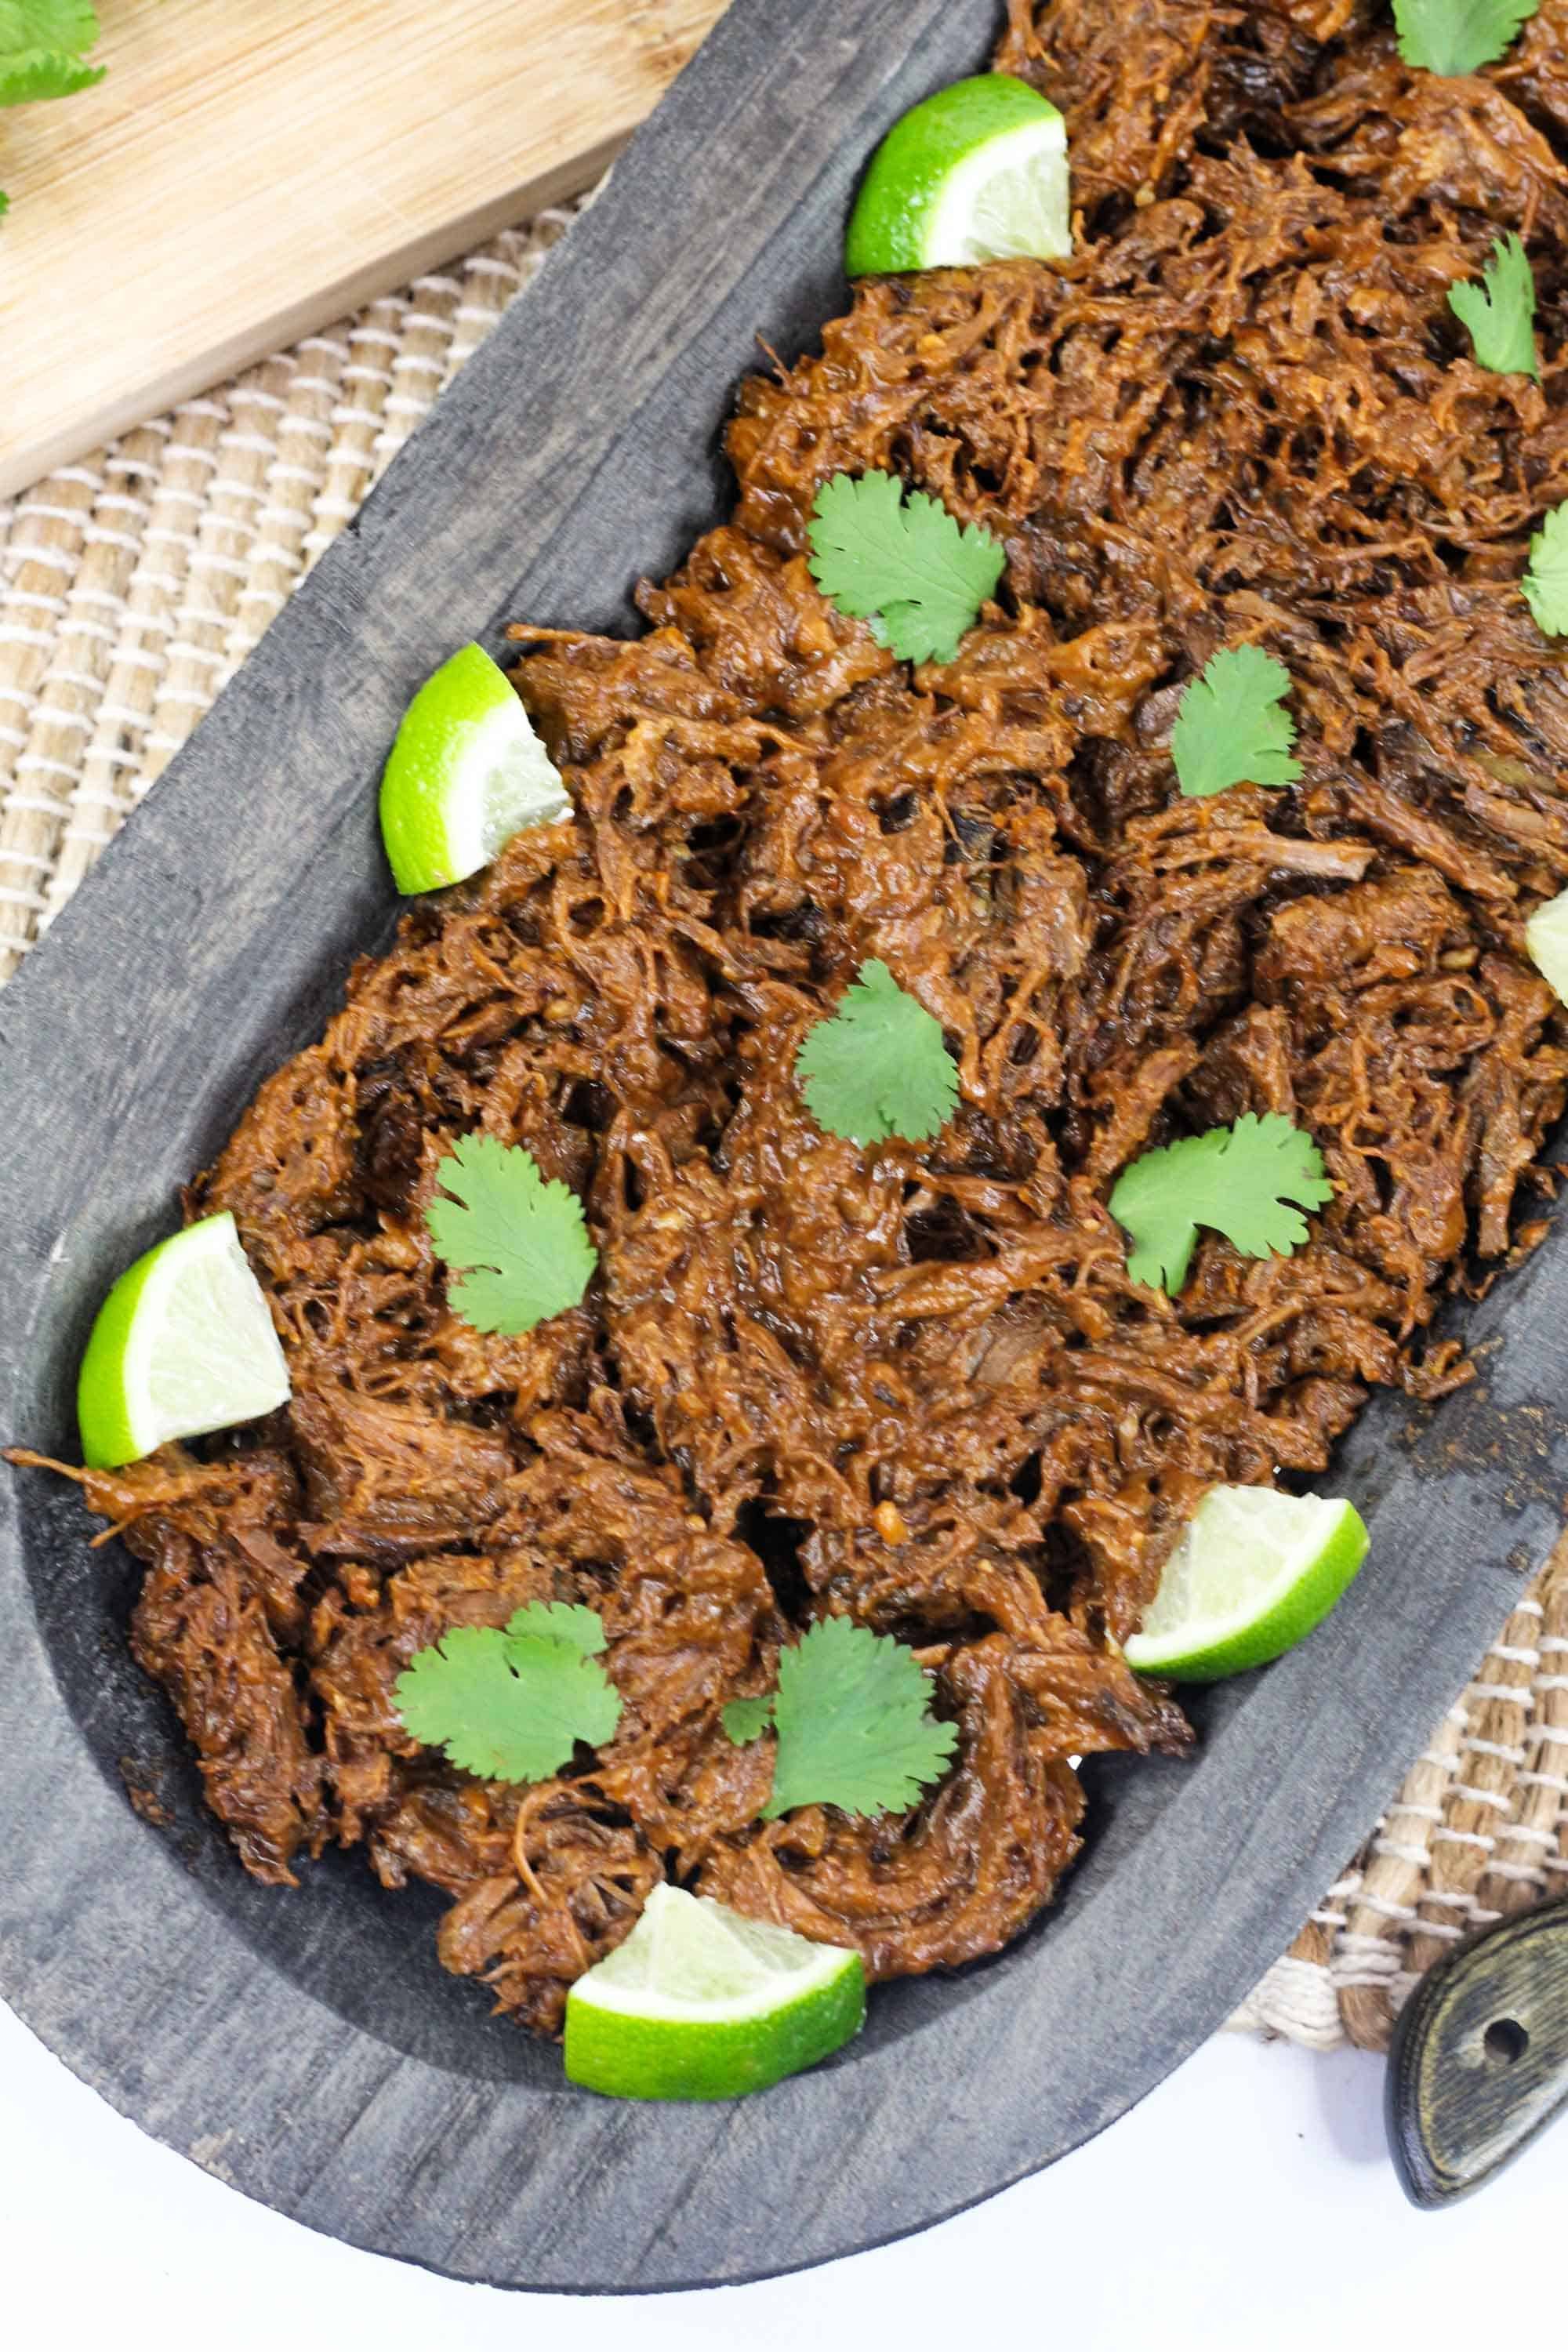 instant pot barbacoa recipe for beef for tacos on serving tray